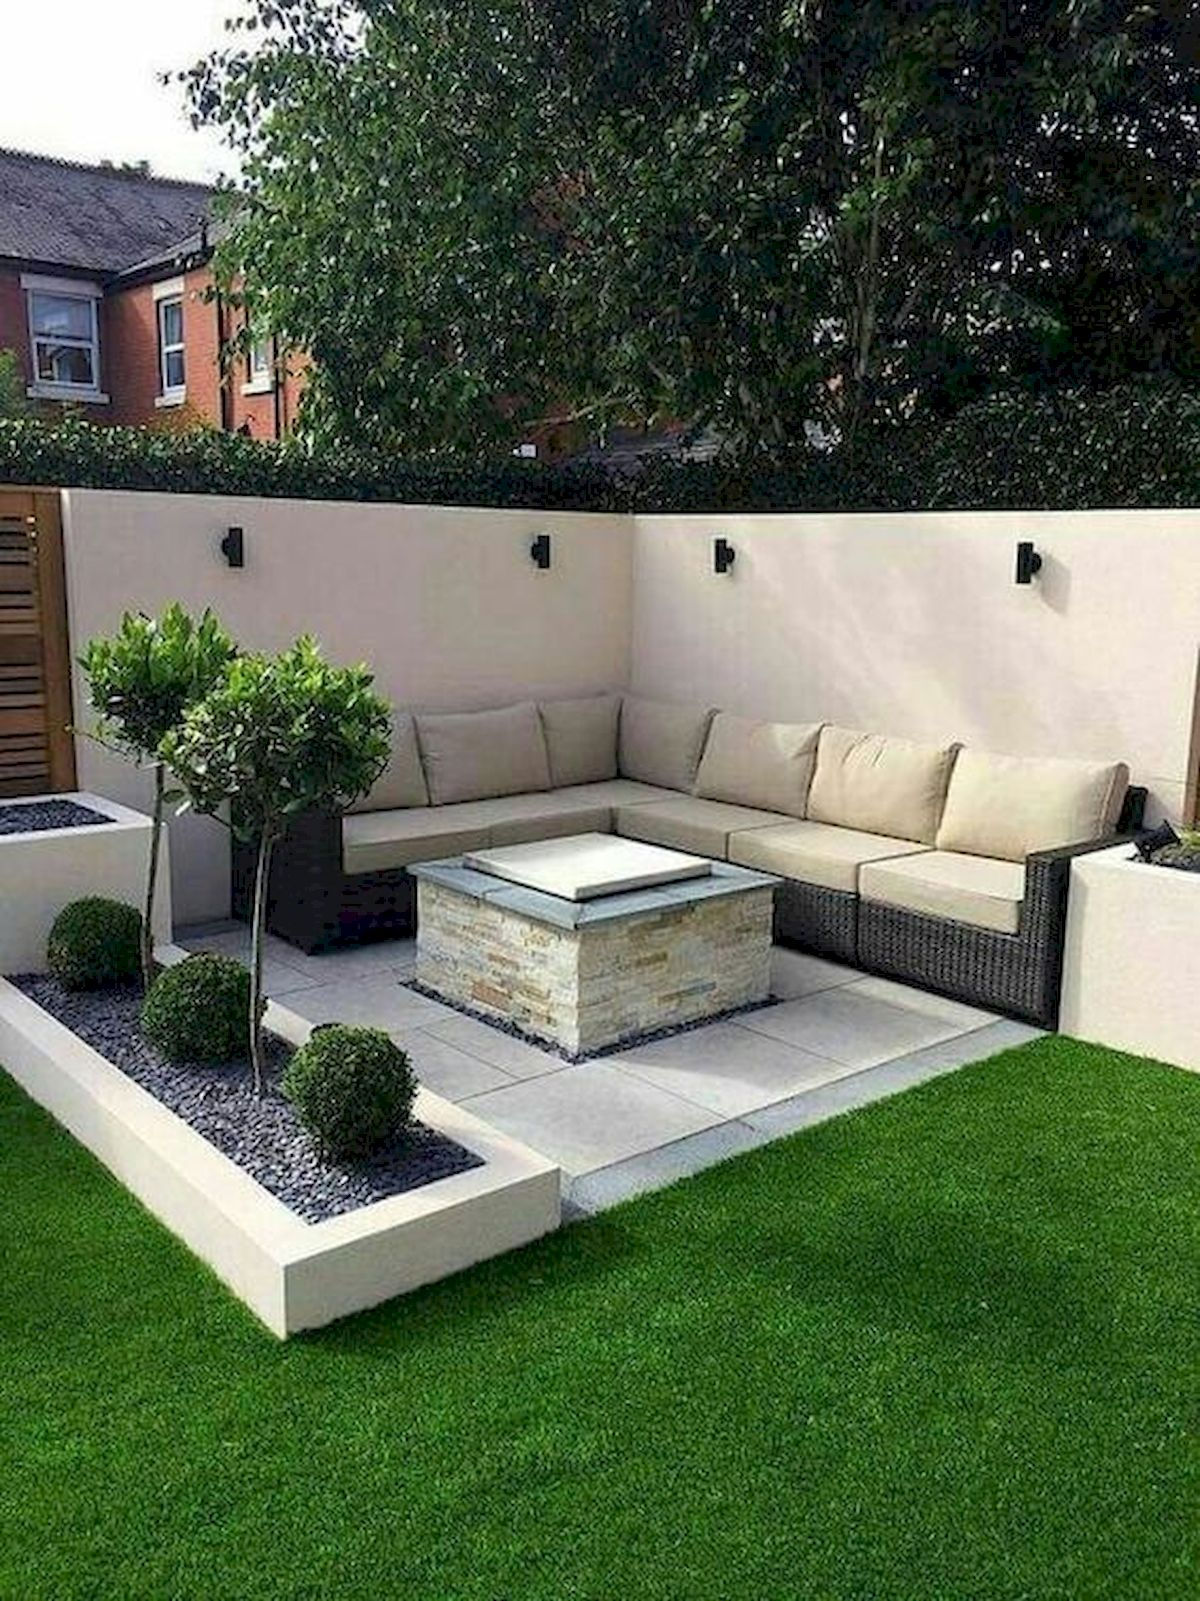 40 Fabulous Modern Garden Designs Ideas For Front Yard And